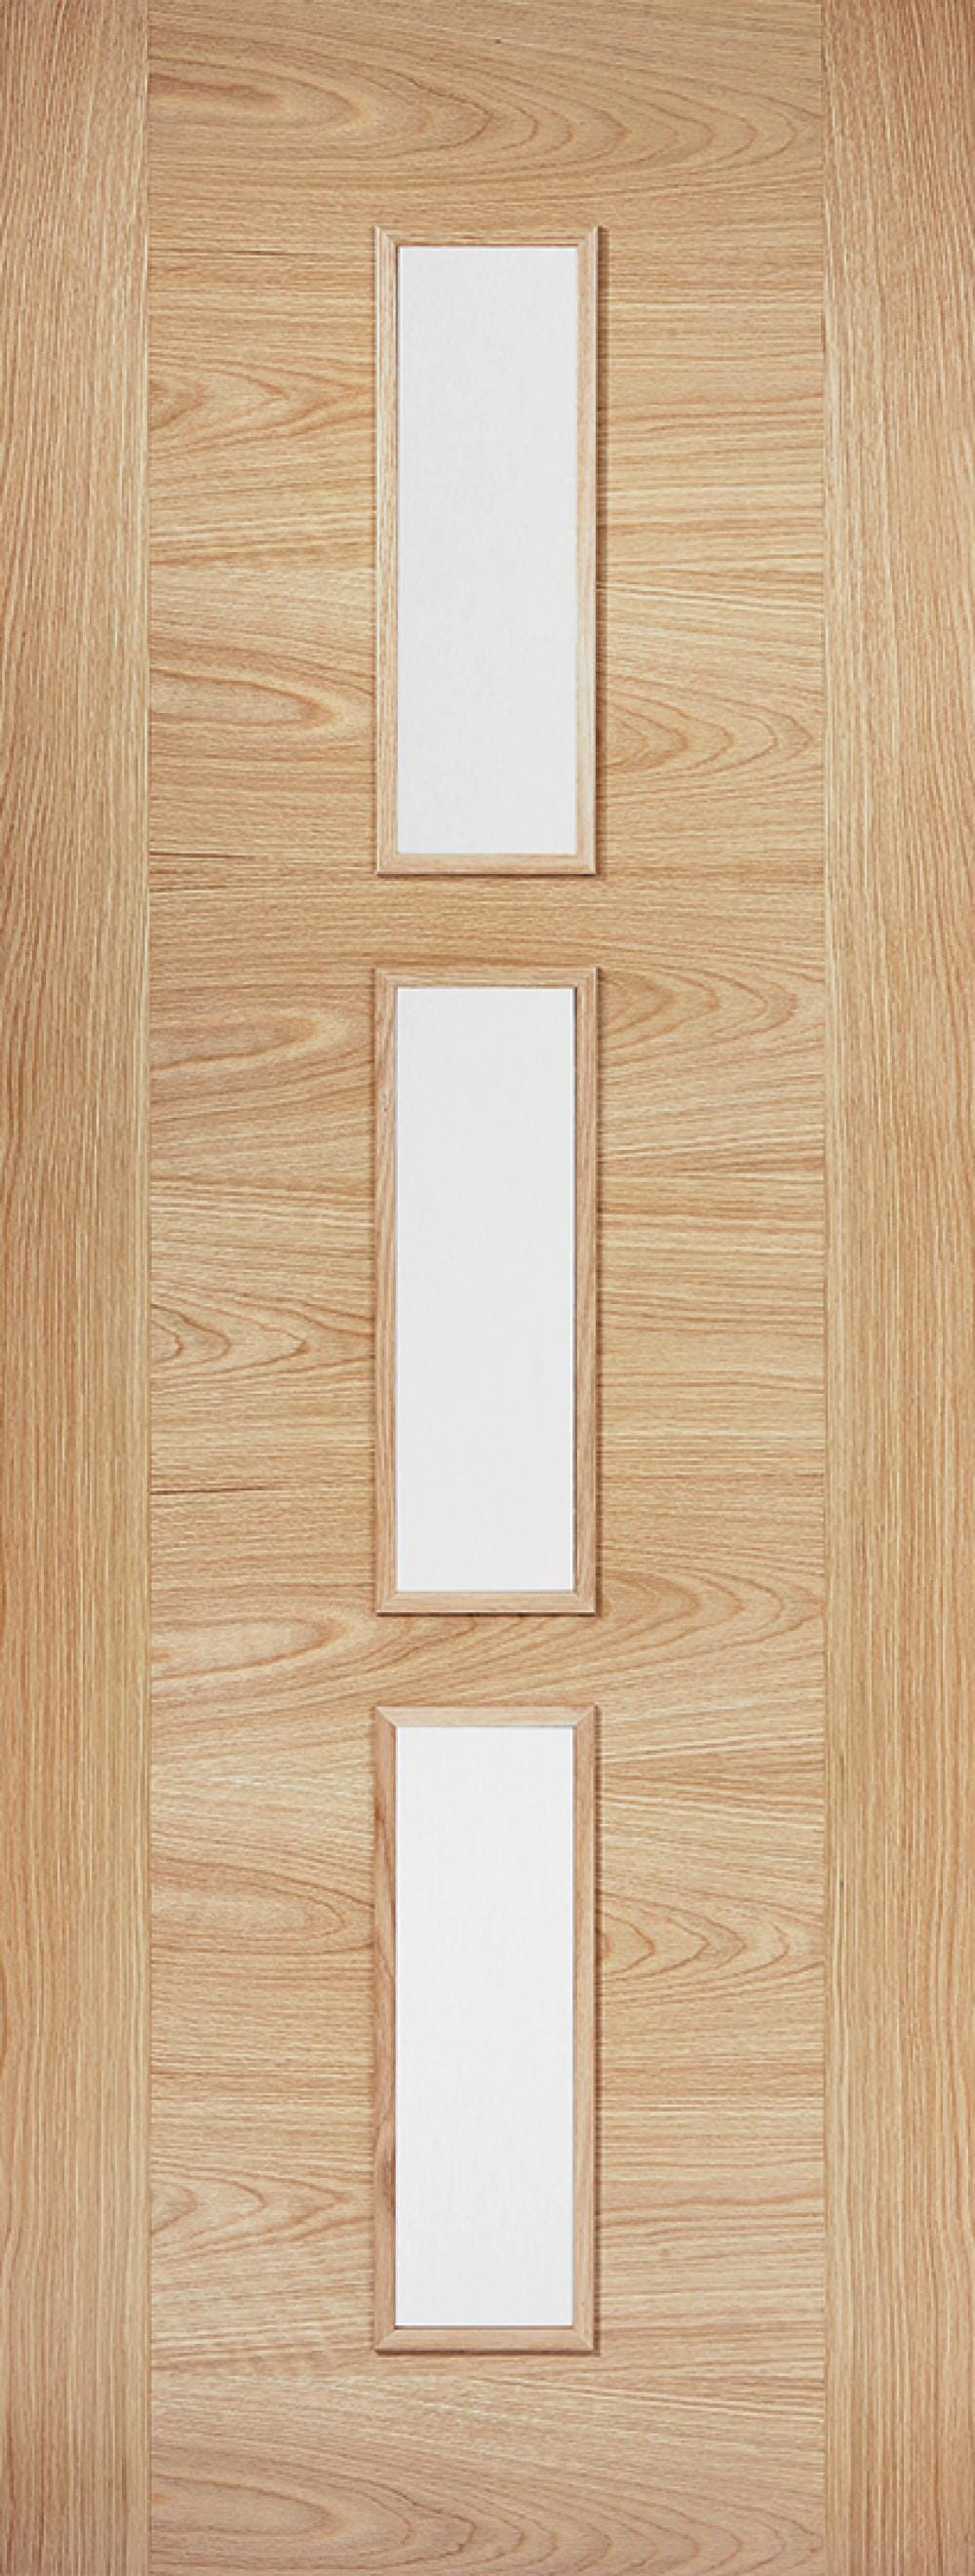 Sofia Oak 3l - Clear Glass Prefinished Image